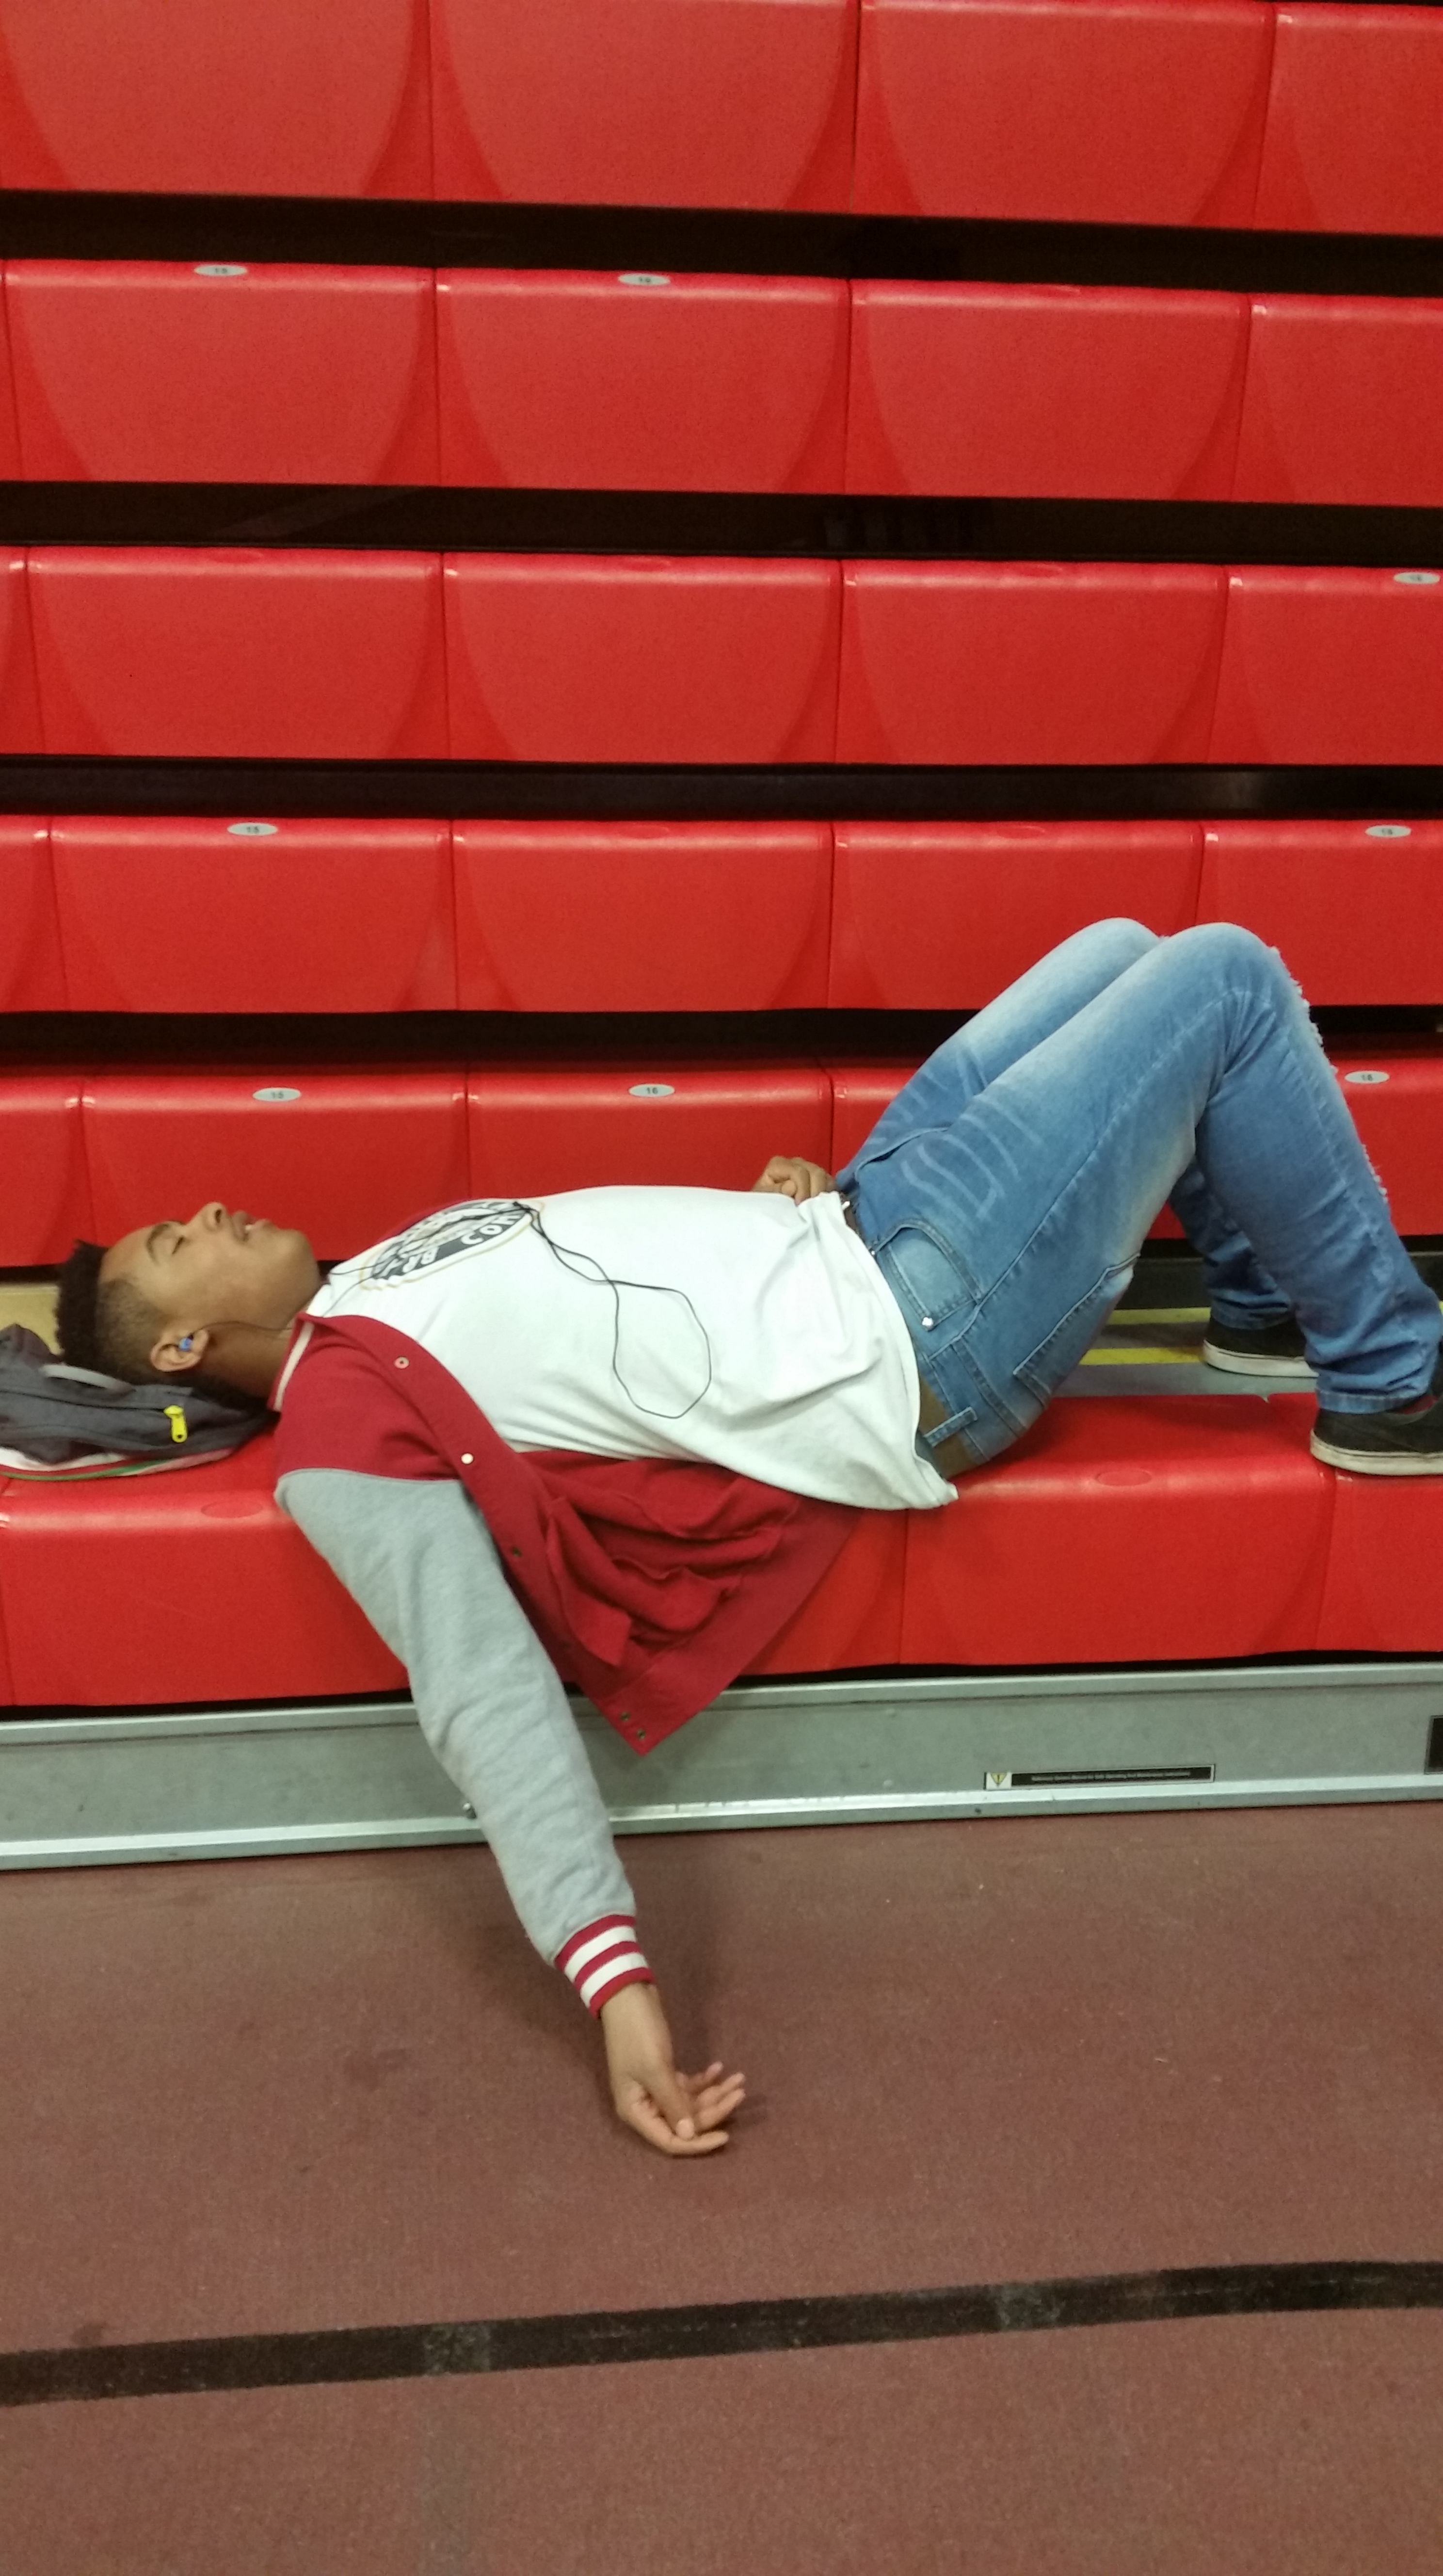 Photo by Kaden Severn Brian harris, suffering from senioritis, takes a nap.